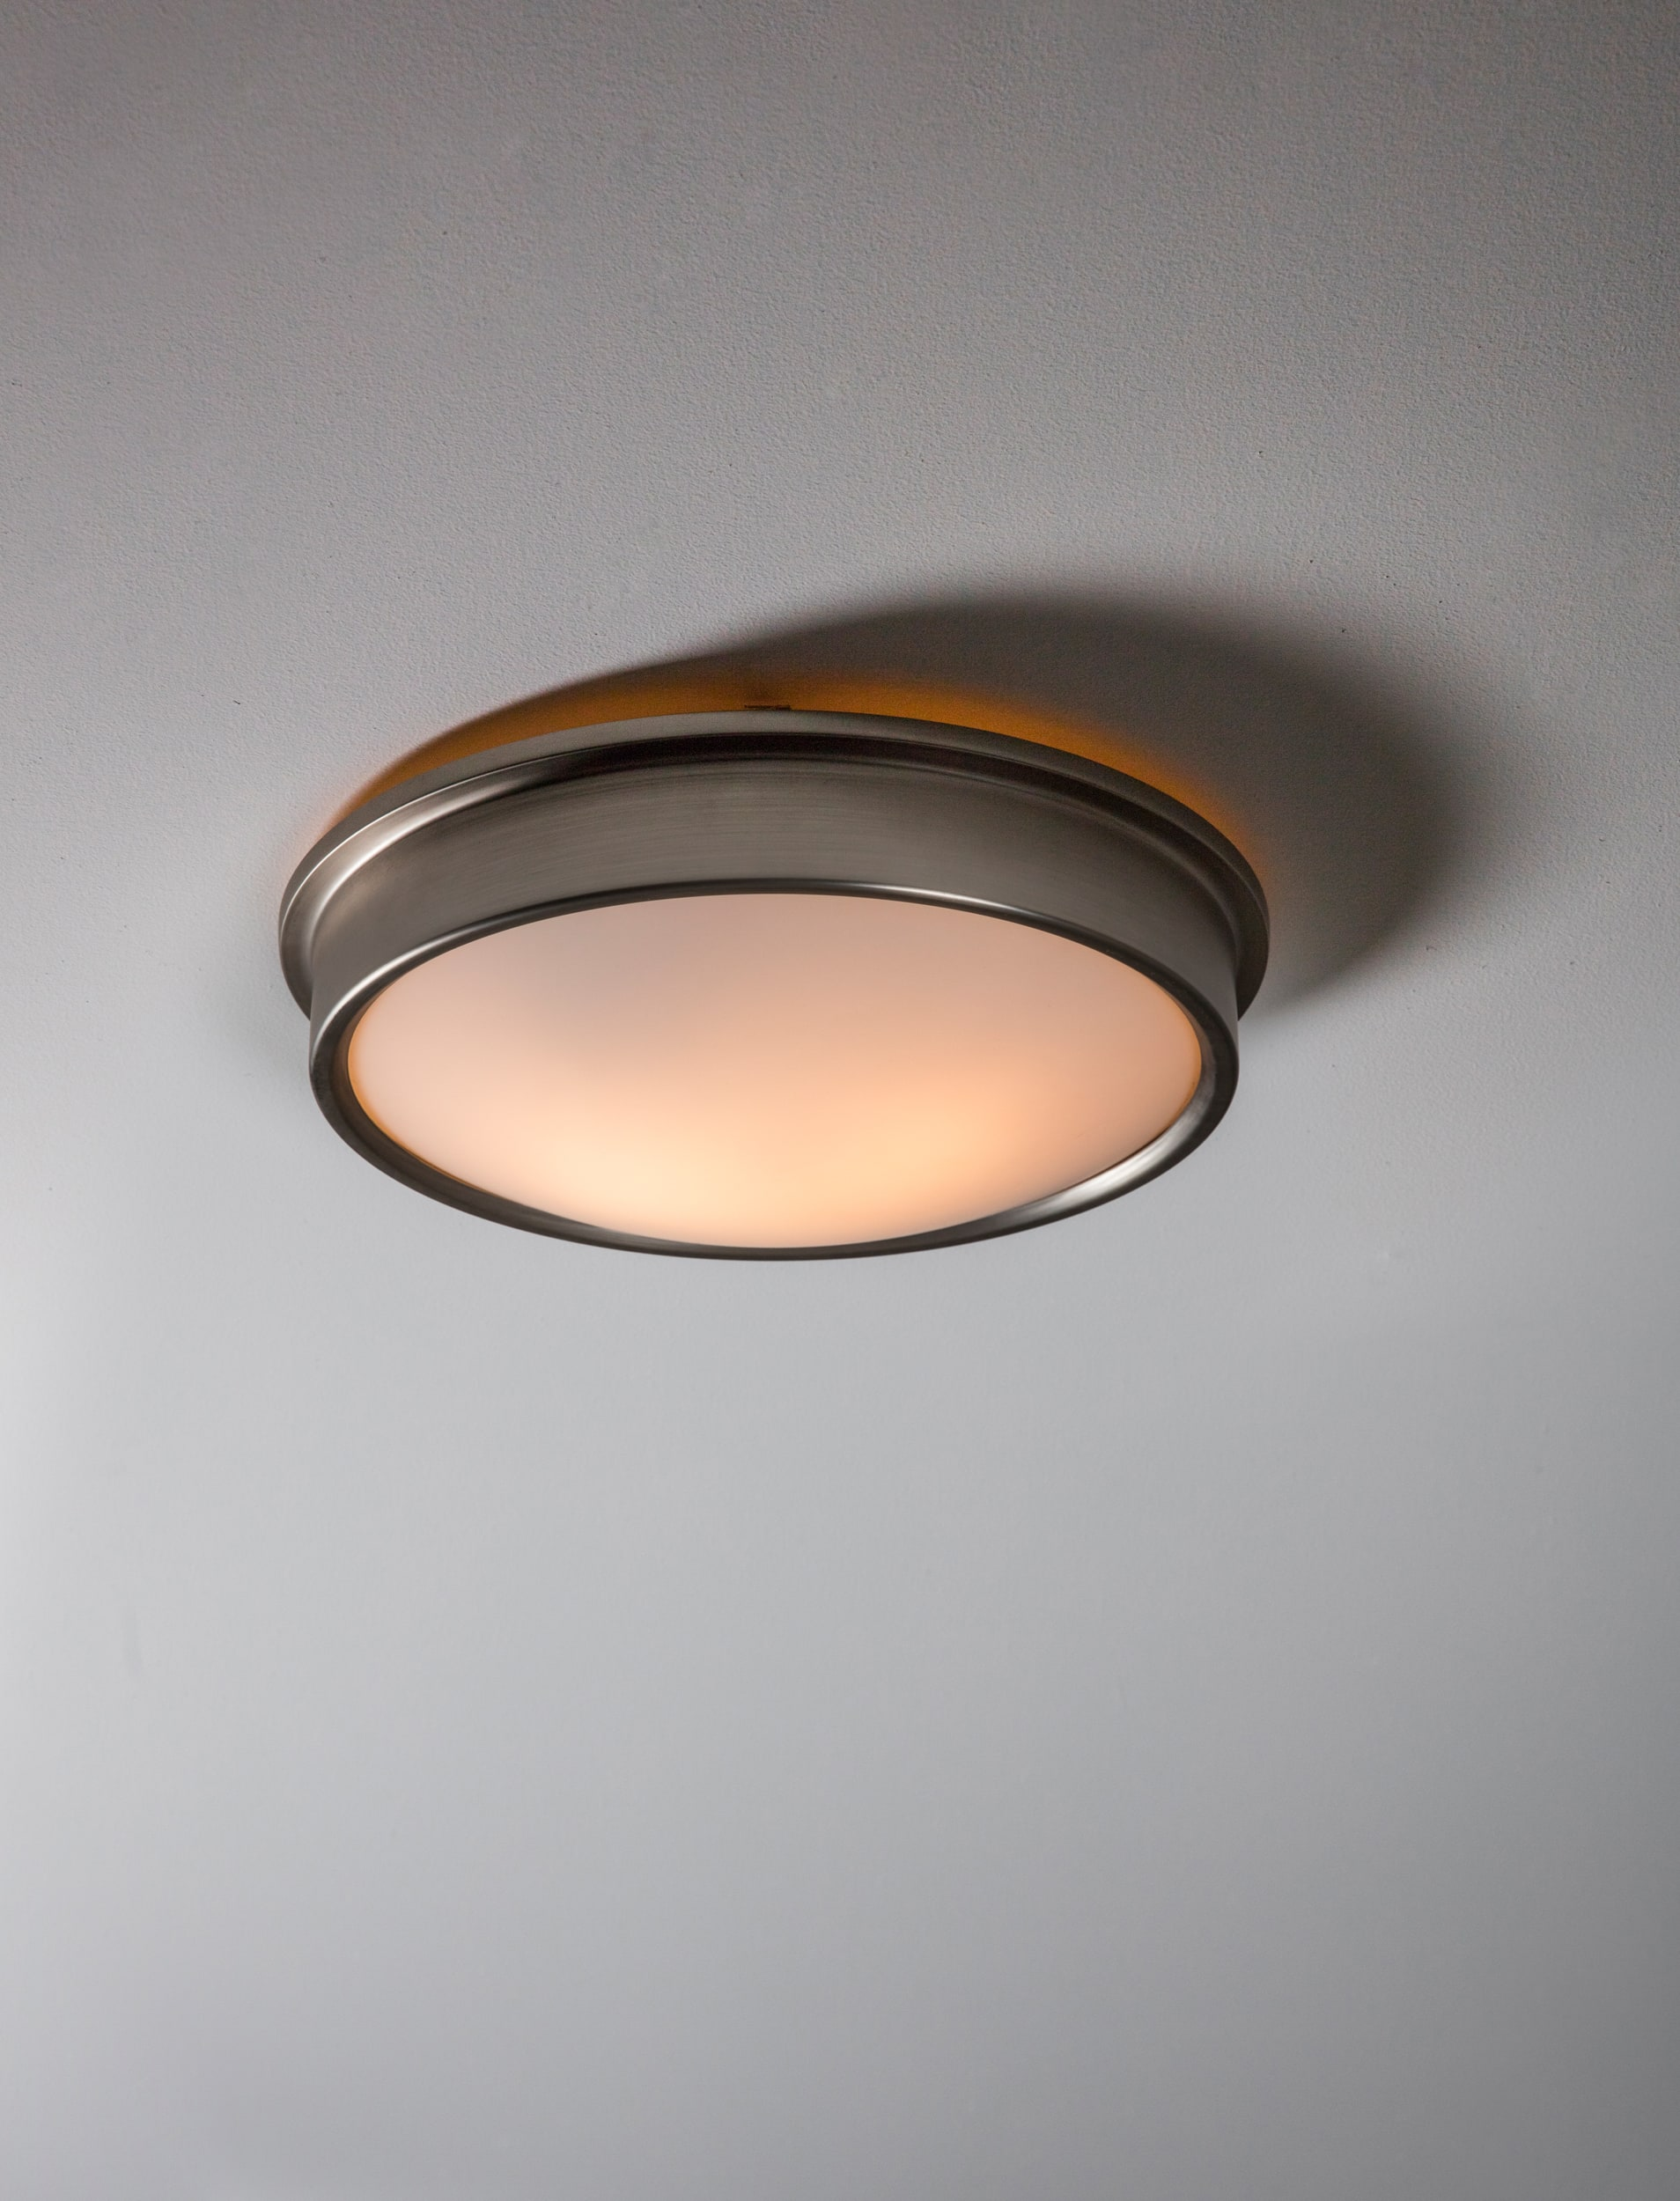 Ladbroke Bathroom Ceiling Light in Silver or Bronze  | Garden Trading